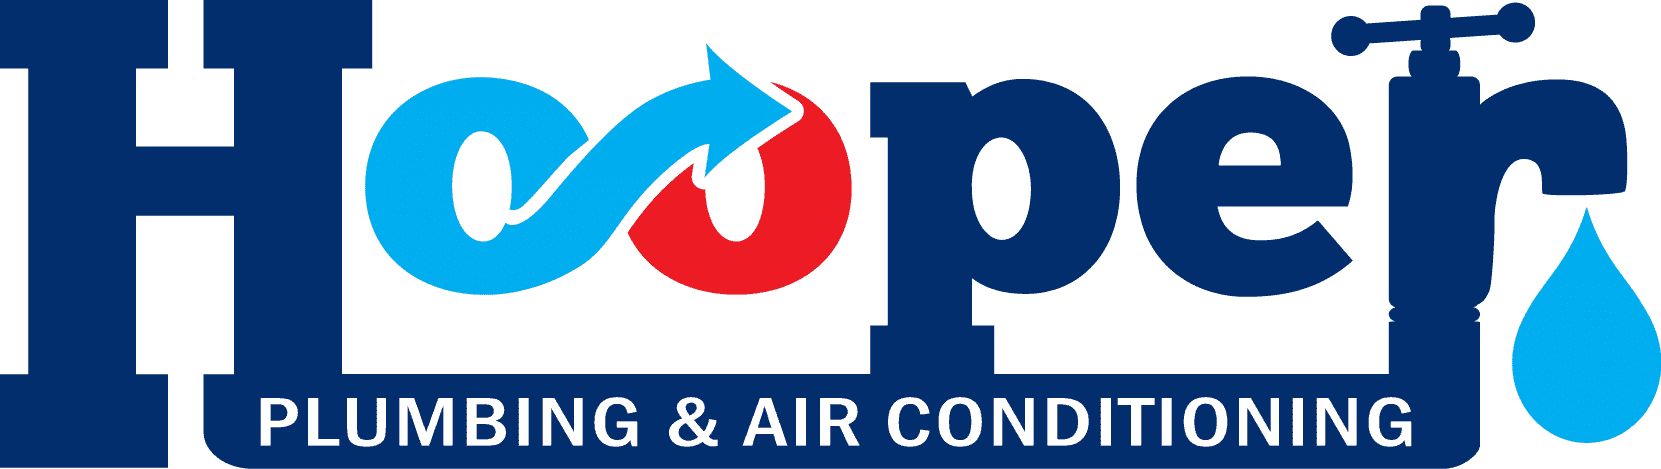 Hooper Plumbing Air Conditioning